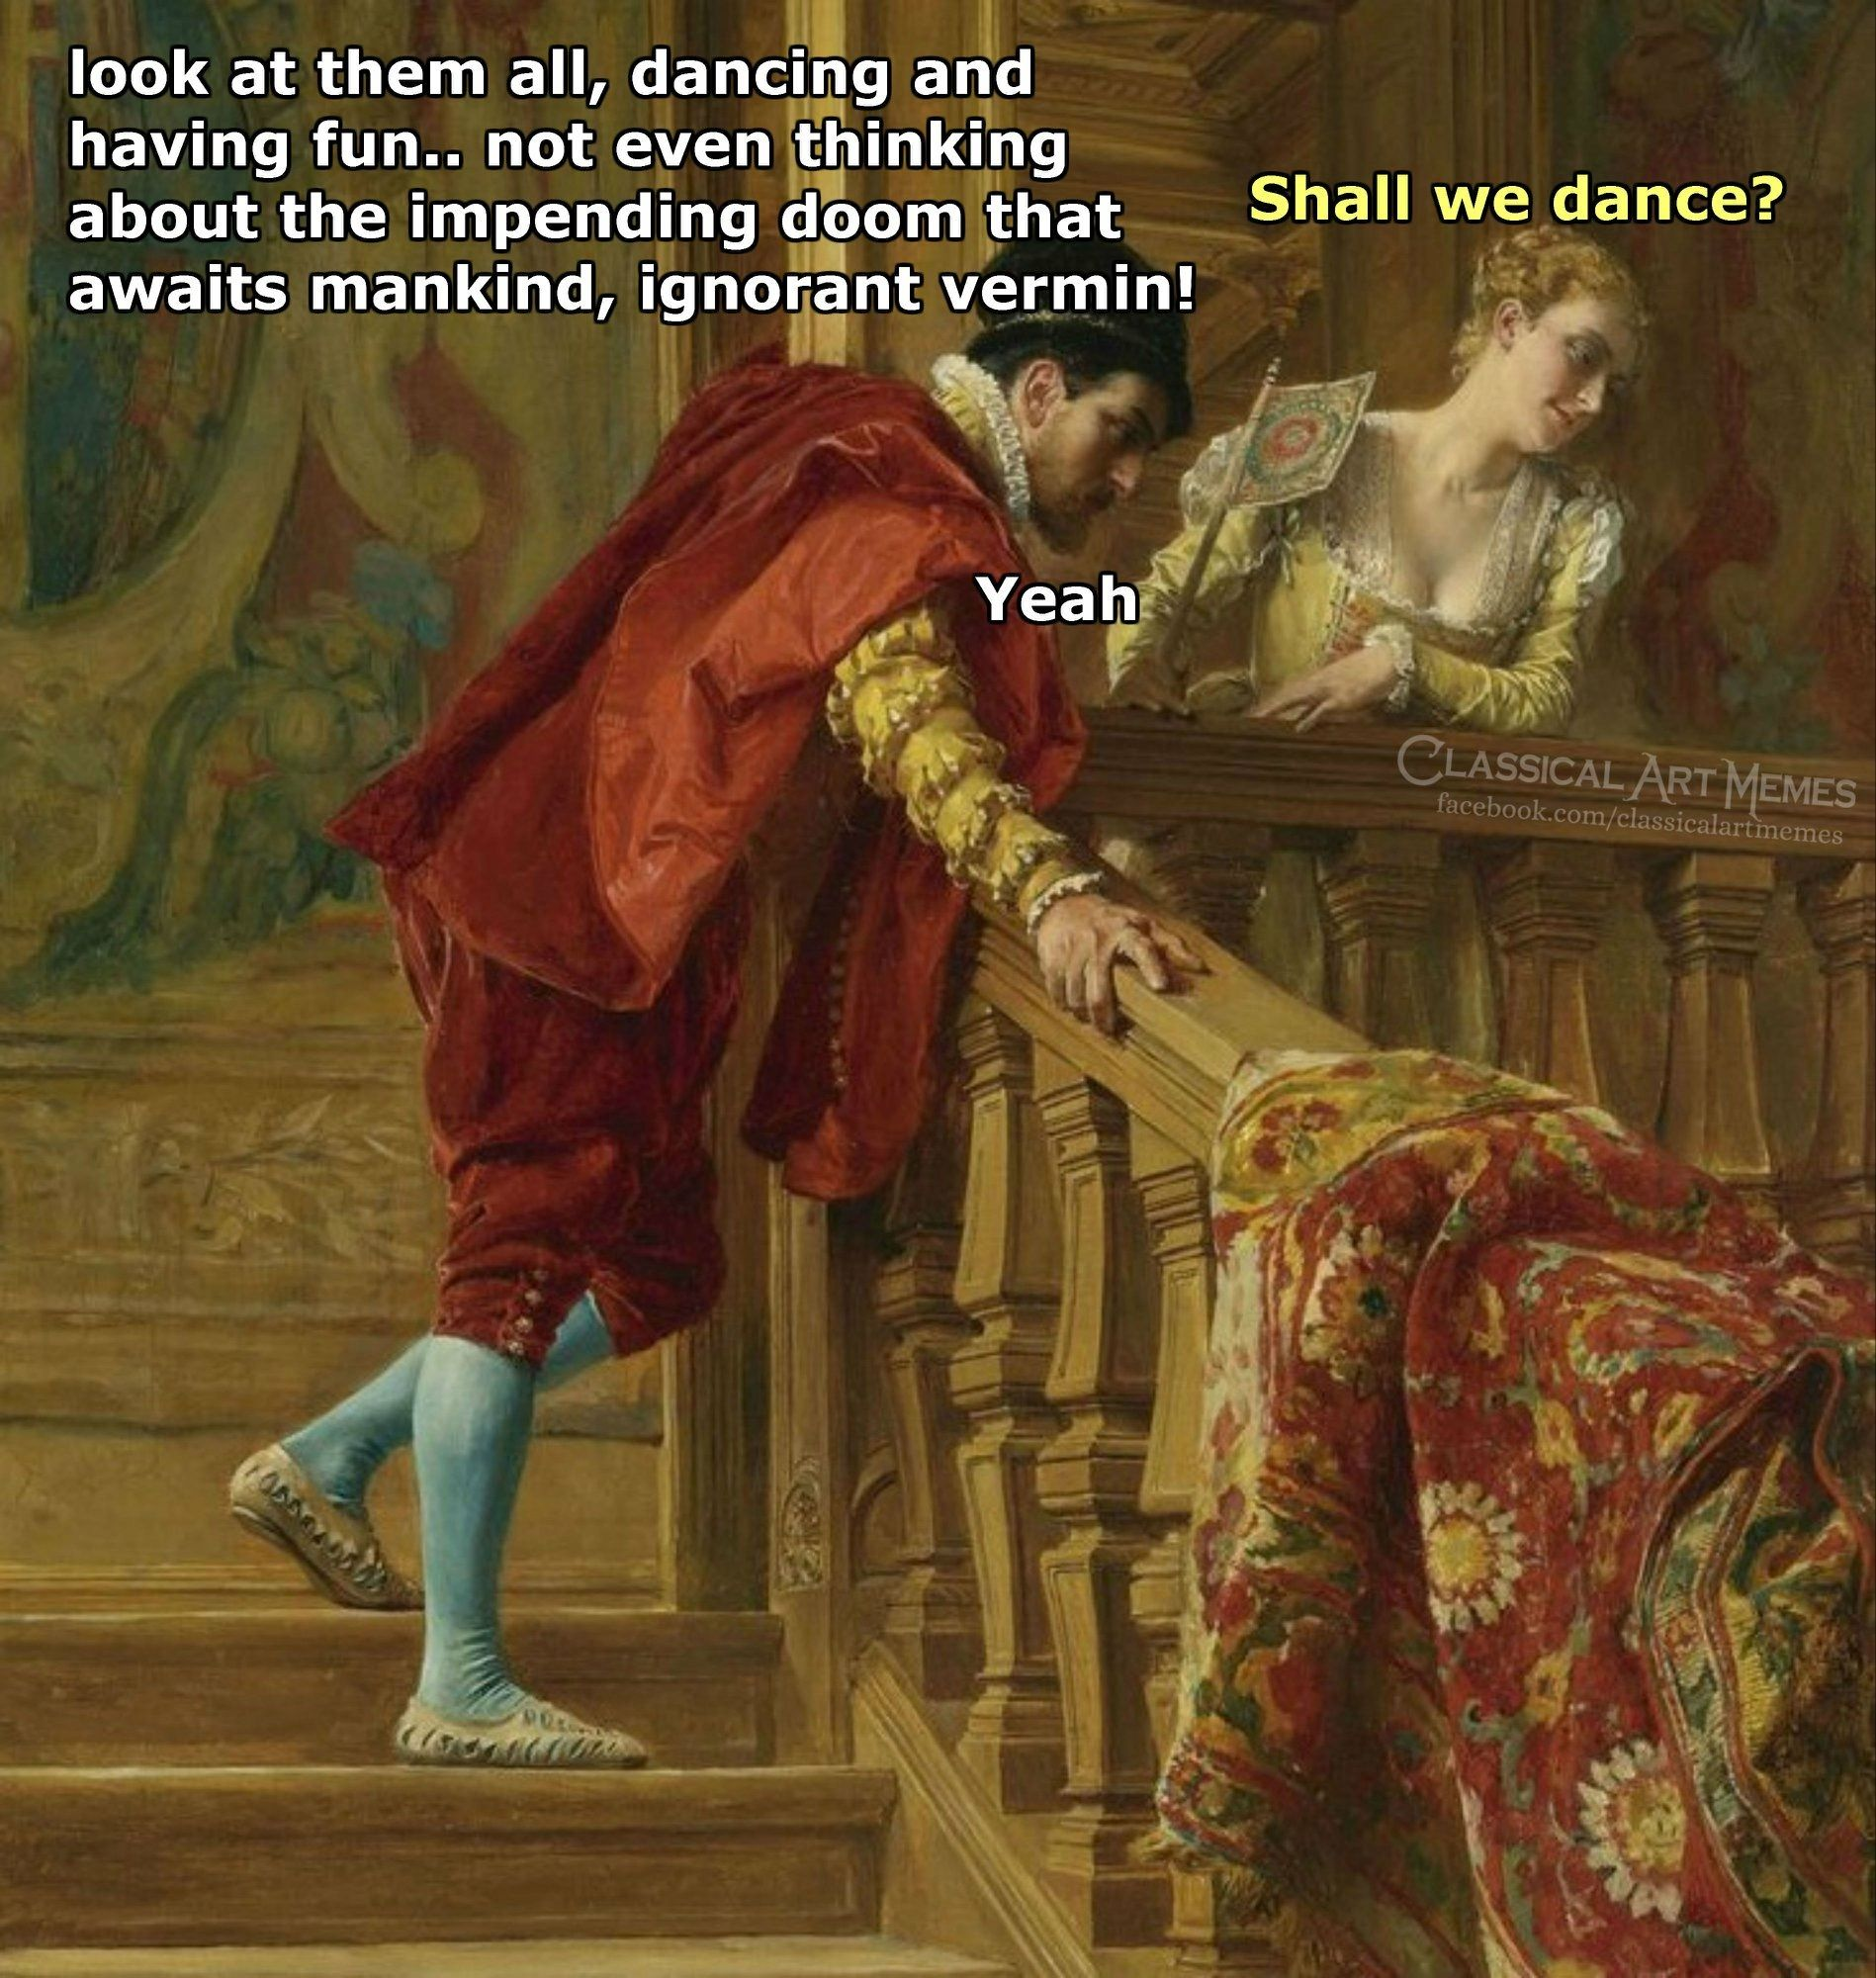 Shall We Dance Classical Art Memes 3 In 2020 Funny Art Memes Classical Art Memes Funny Art History